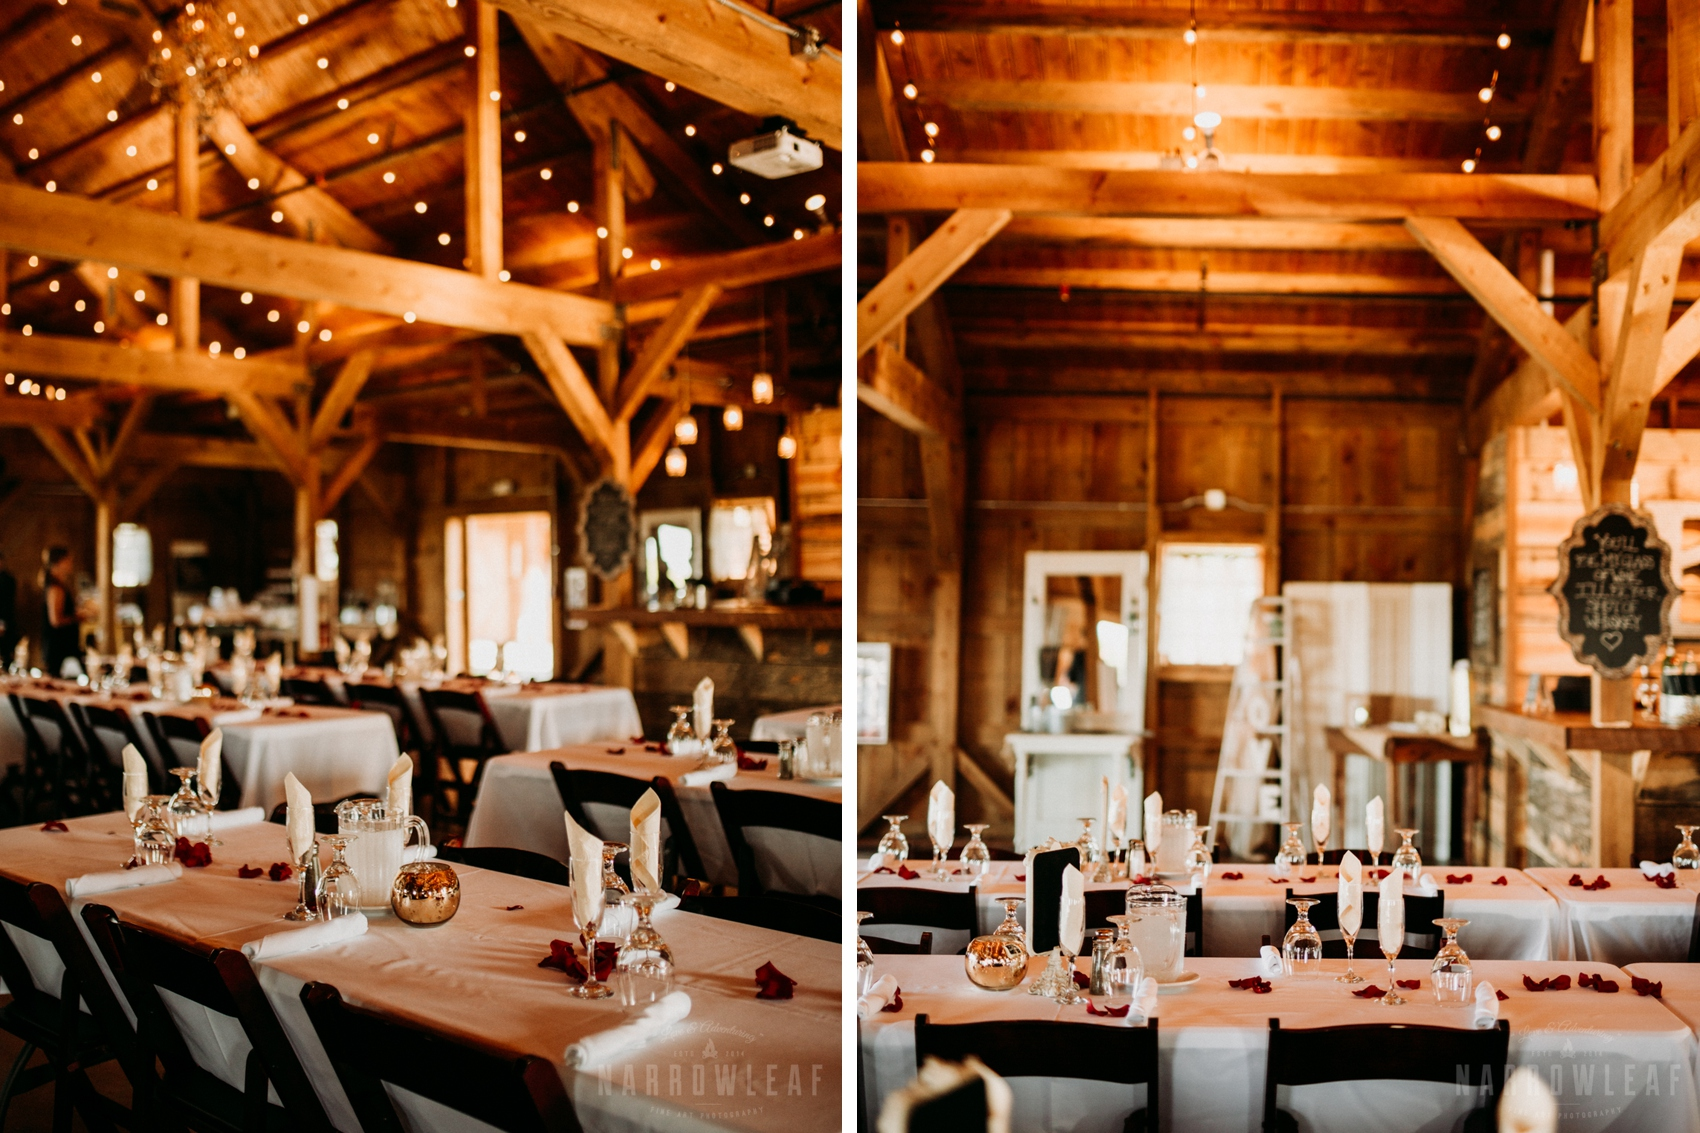 rustic-chic-wedding-reception-details-at-rustys-hitchin-post-new-richmond-wi019-020.jpg